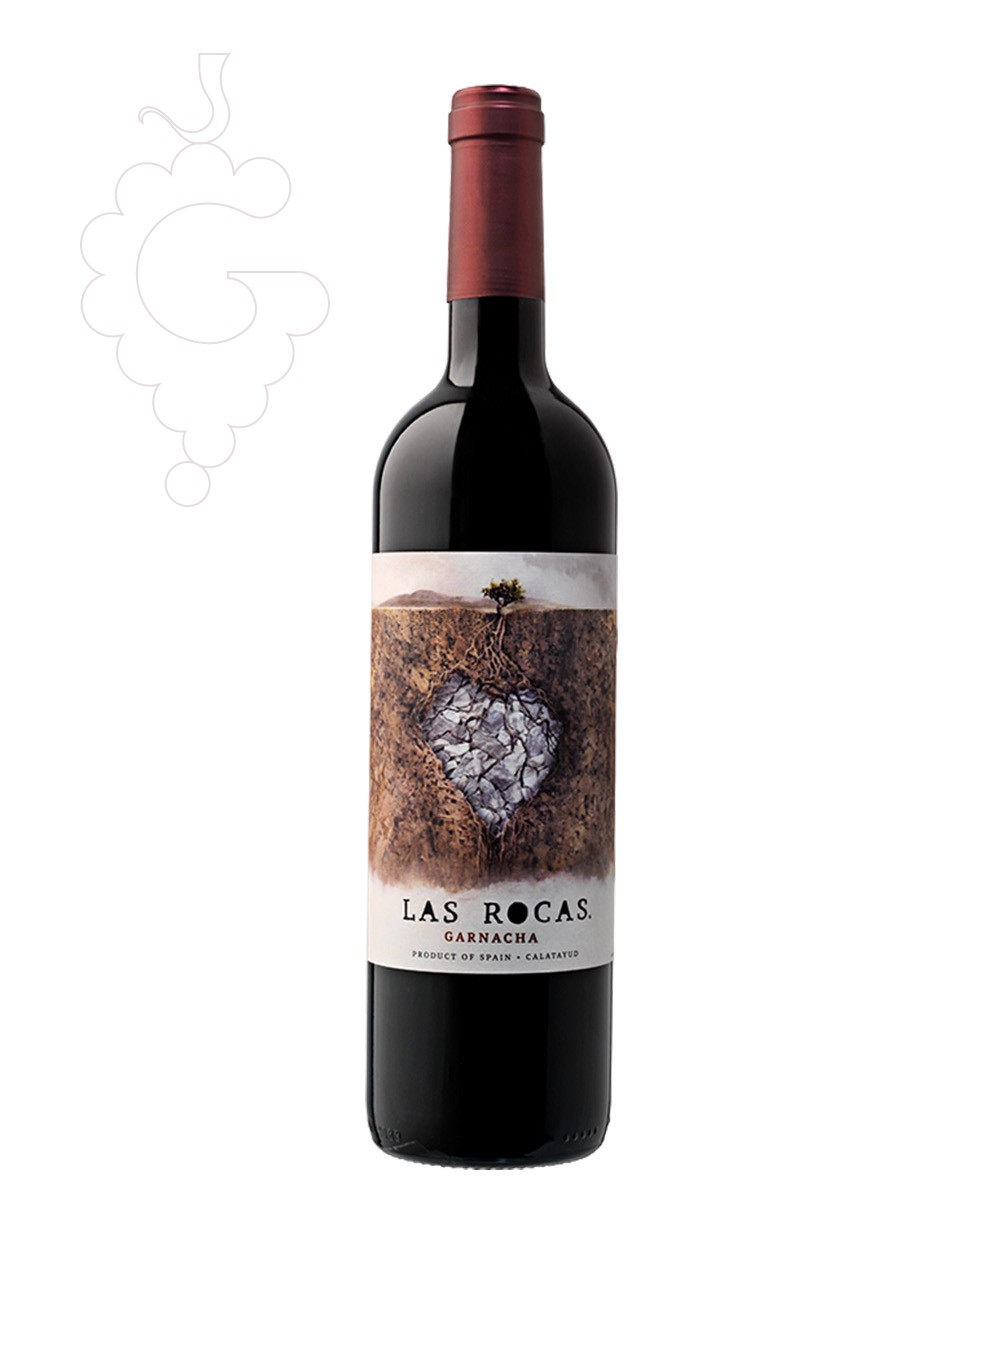 Photo Las Rocas Garnatxa red wine